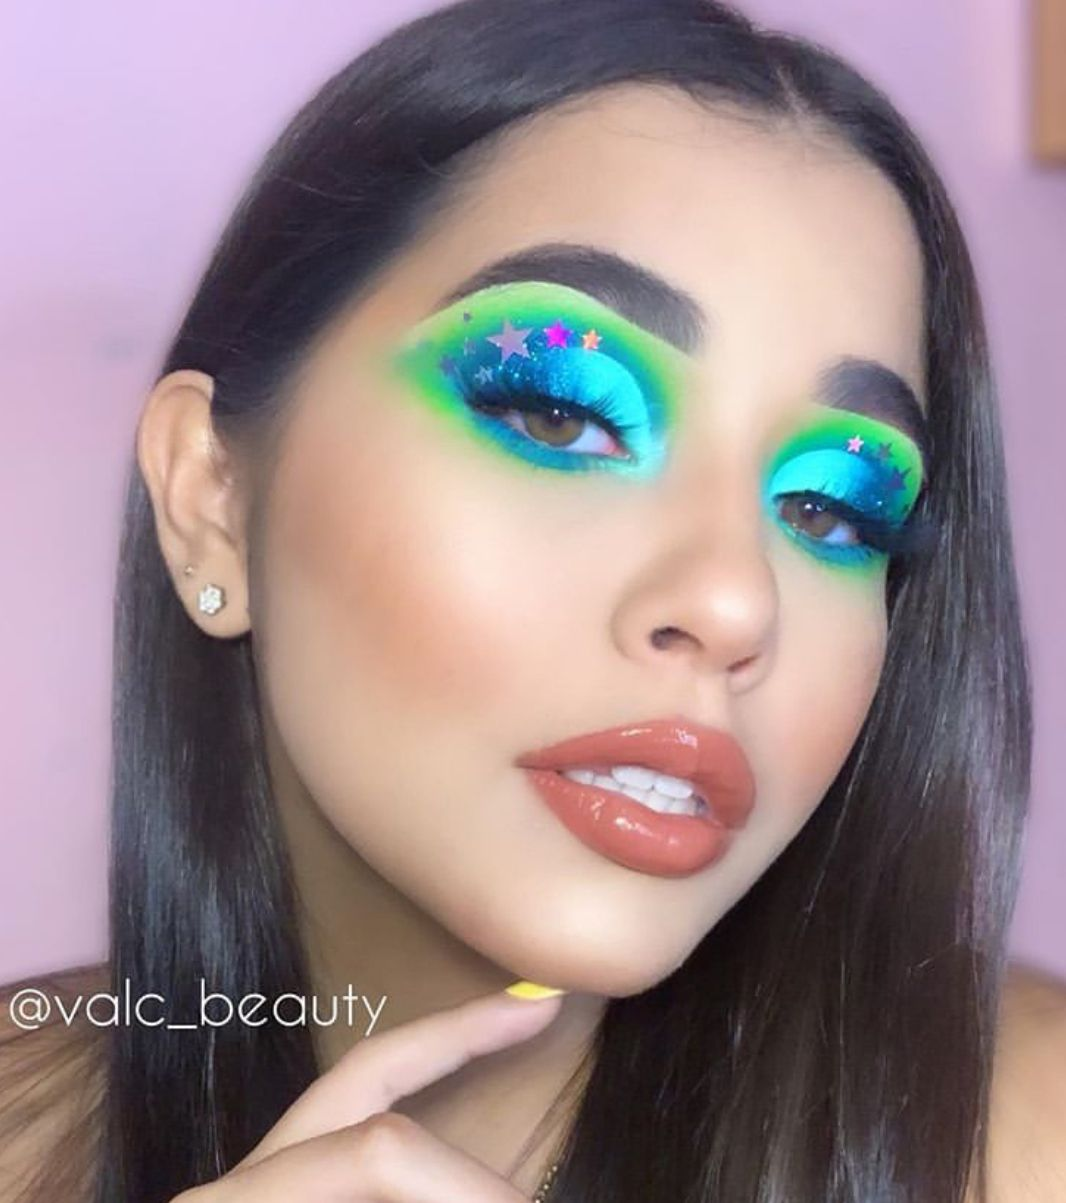 Now This Is A Look For The City Of Neon Lights Valc Beauty